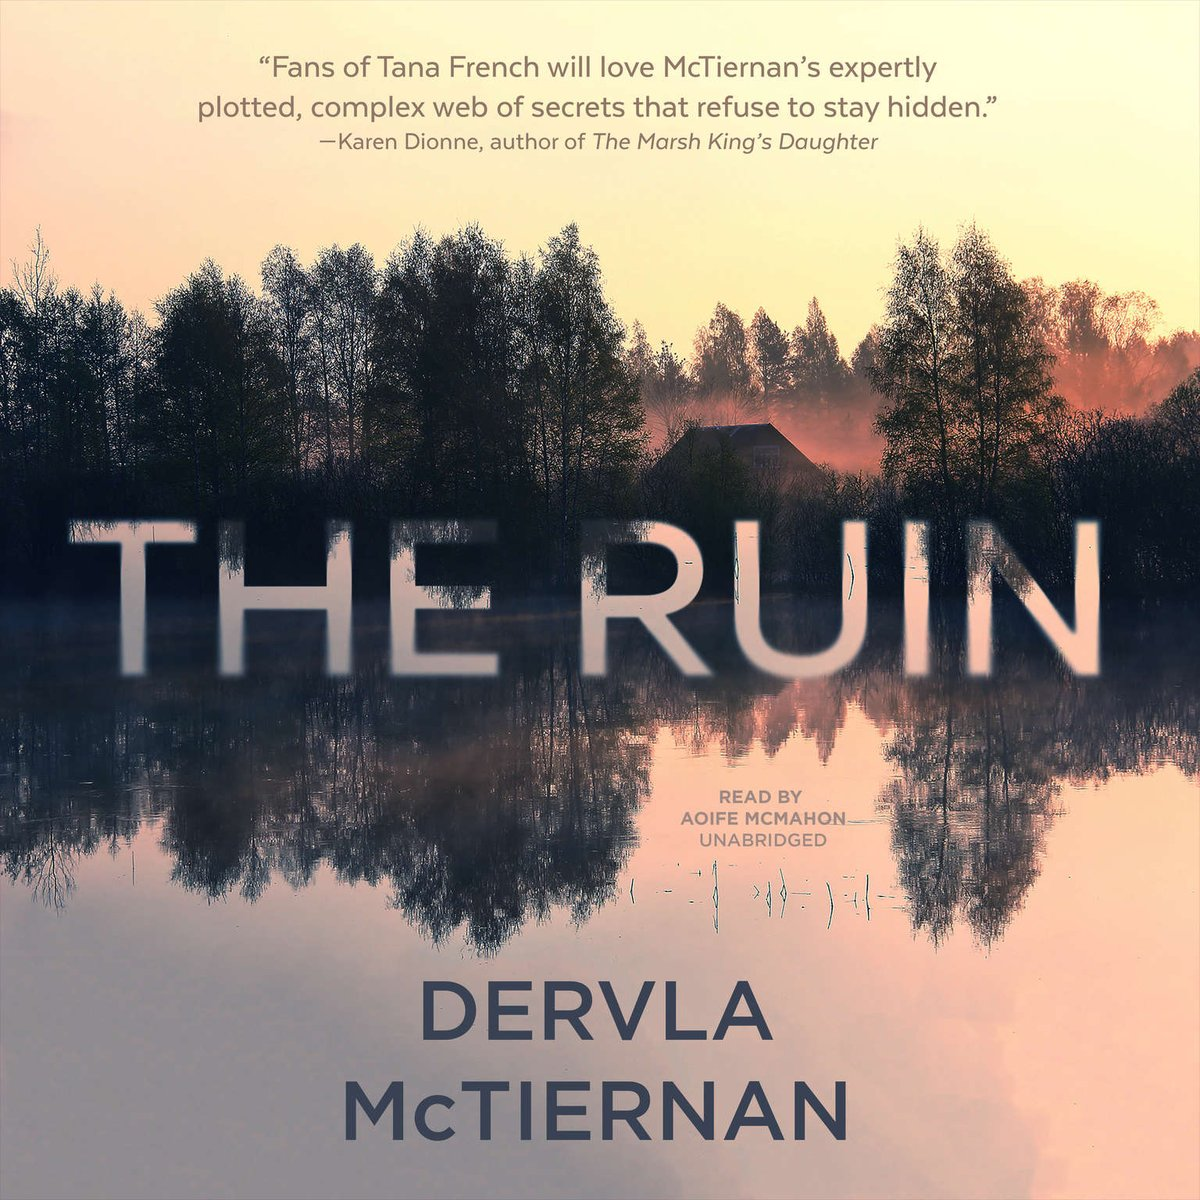 #DailySteal The Ruin #audiobook by Dervla McTiernan, read by Aoife McMahon is available for just $4.95 today!  http:// bit.ly/2P9ETtW  &nbsp;  <br>http://pic.twitter.com/H9OPffbTir